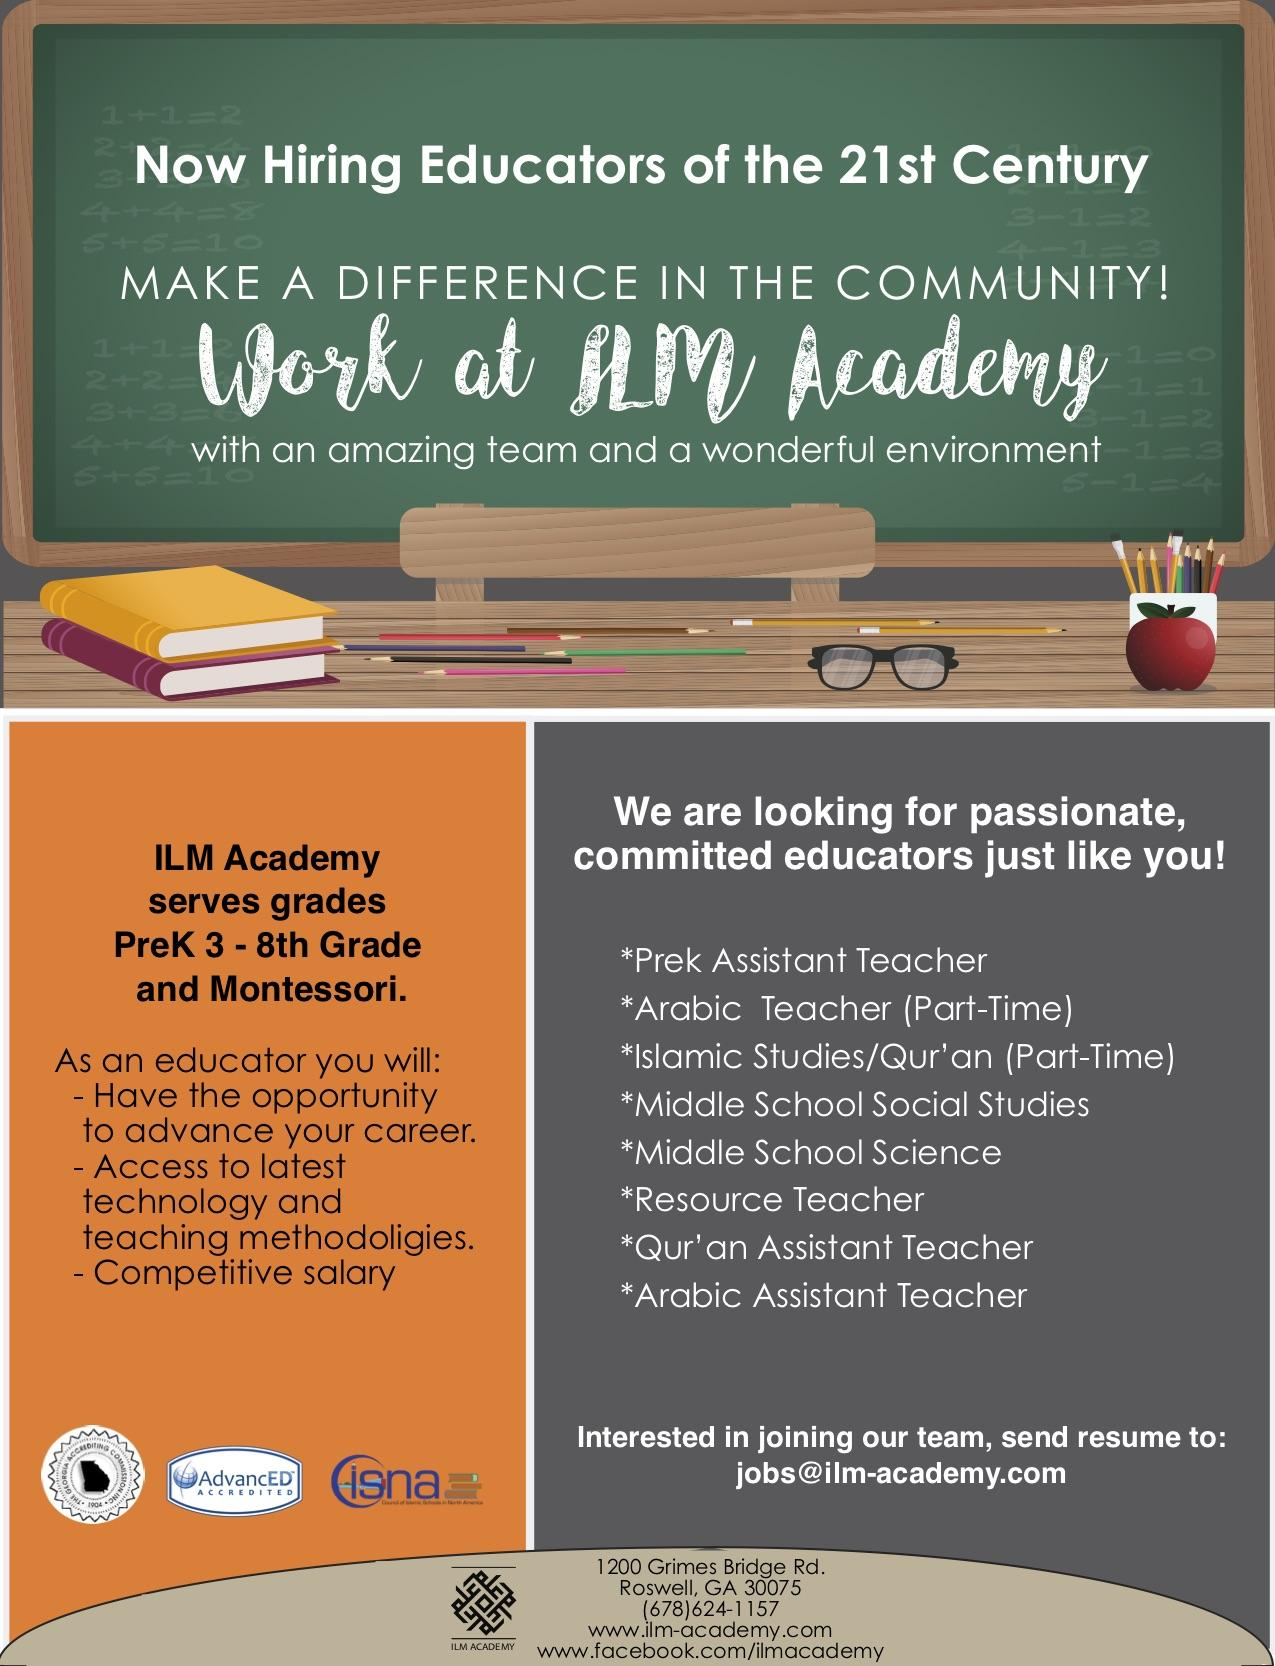 Job Openings - Discover - ILM Academy